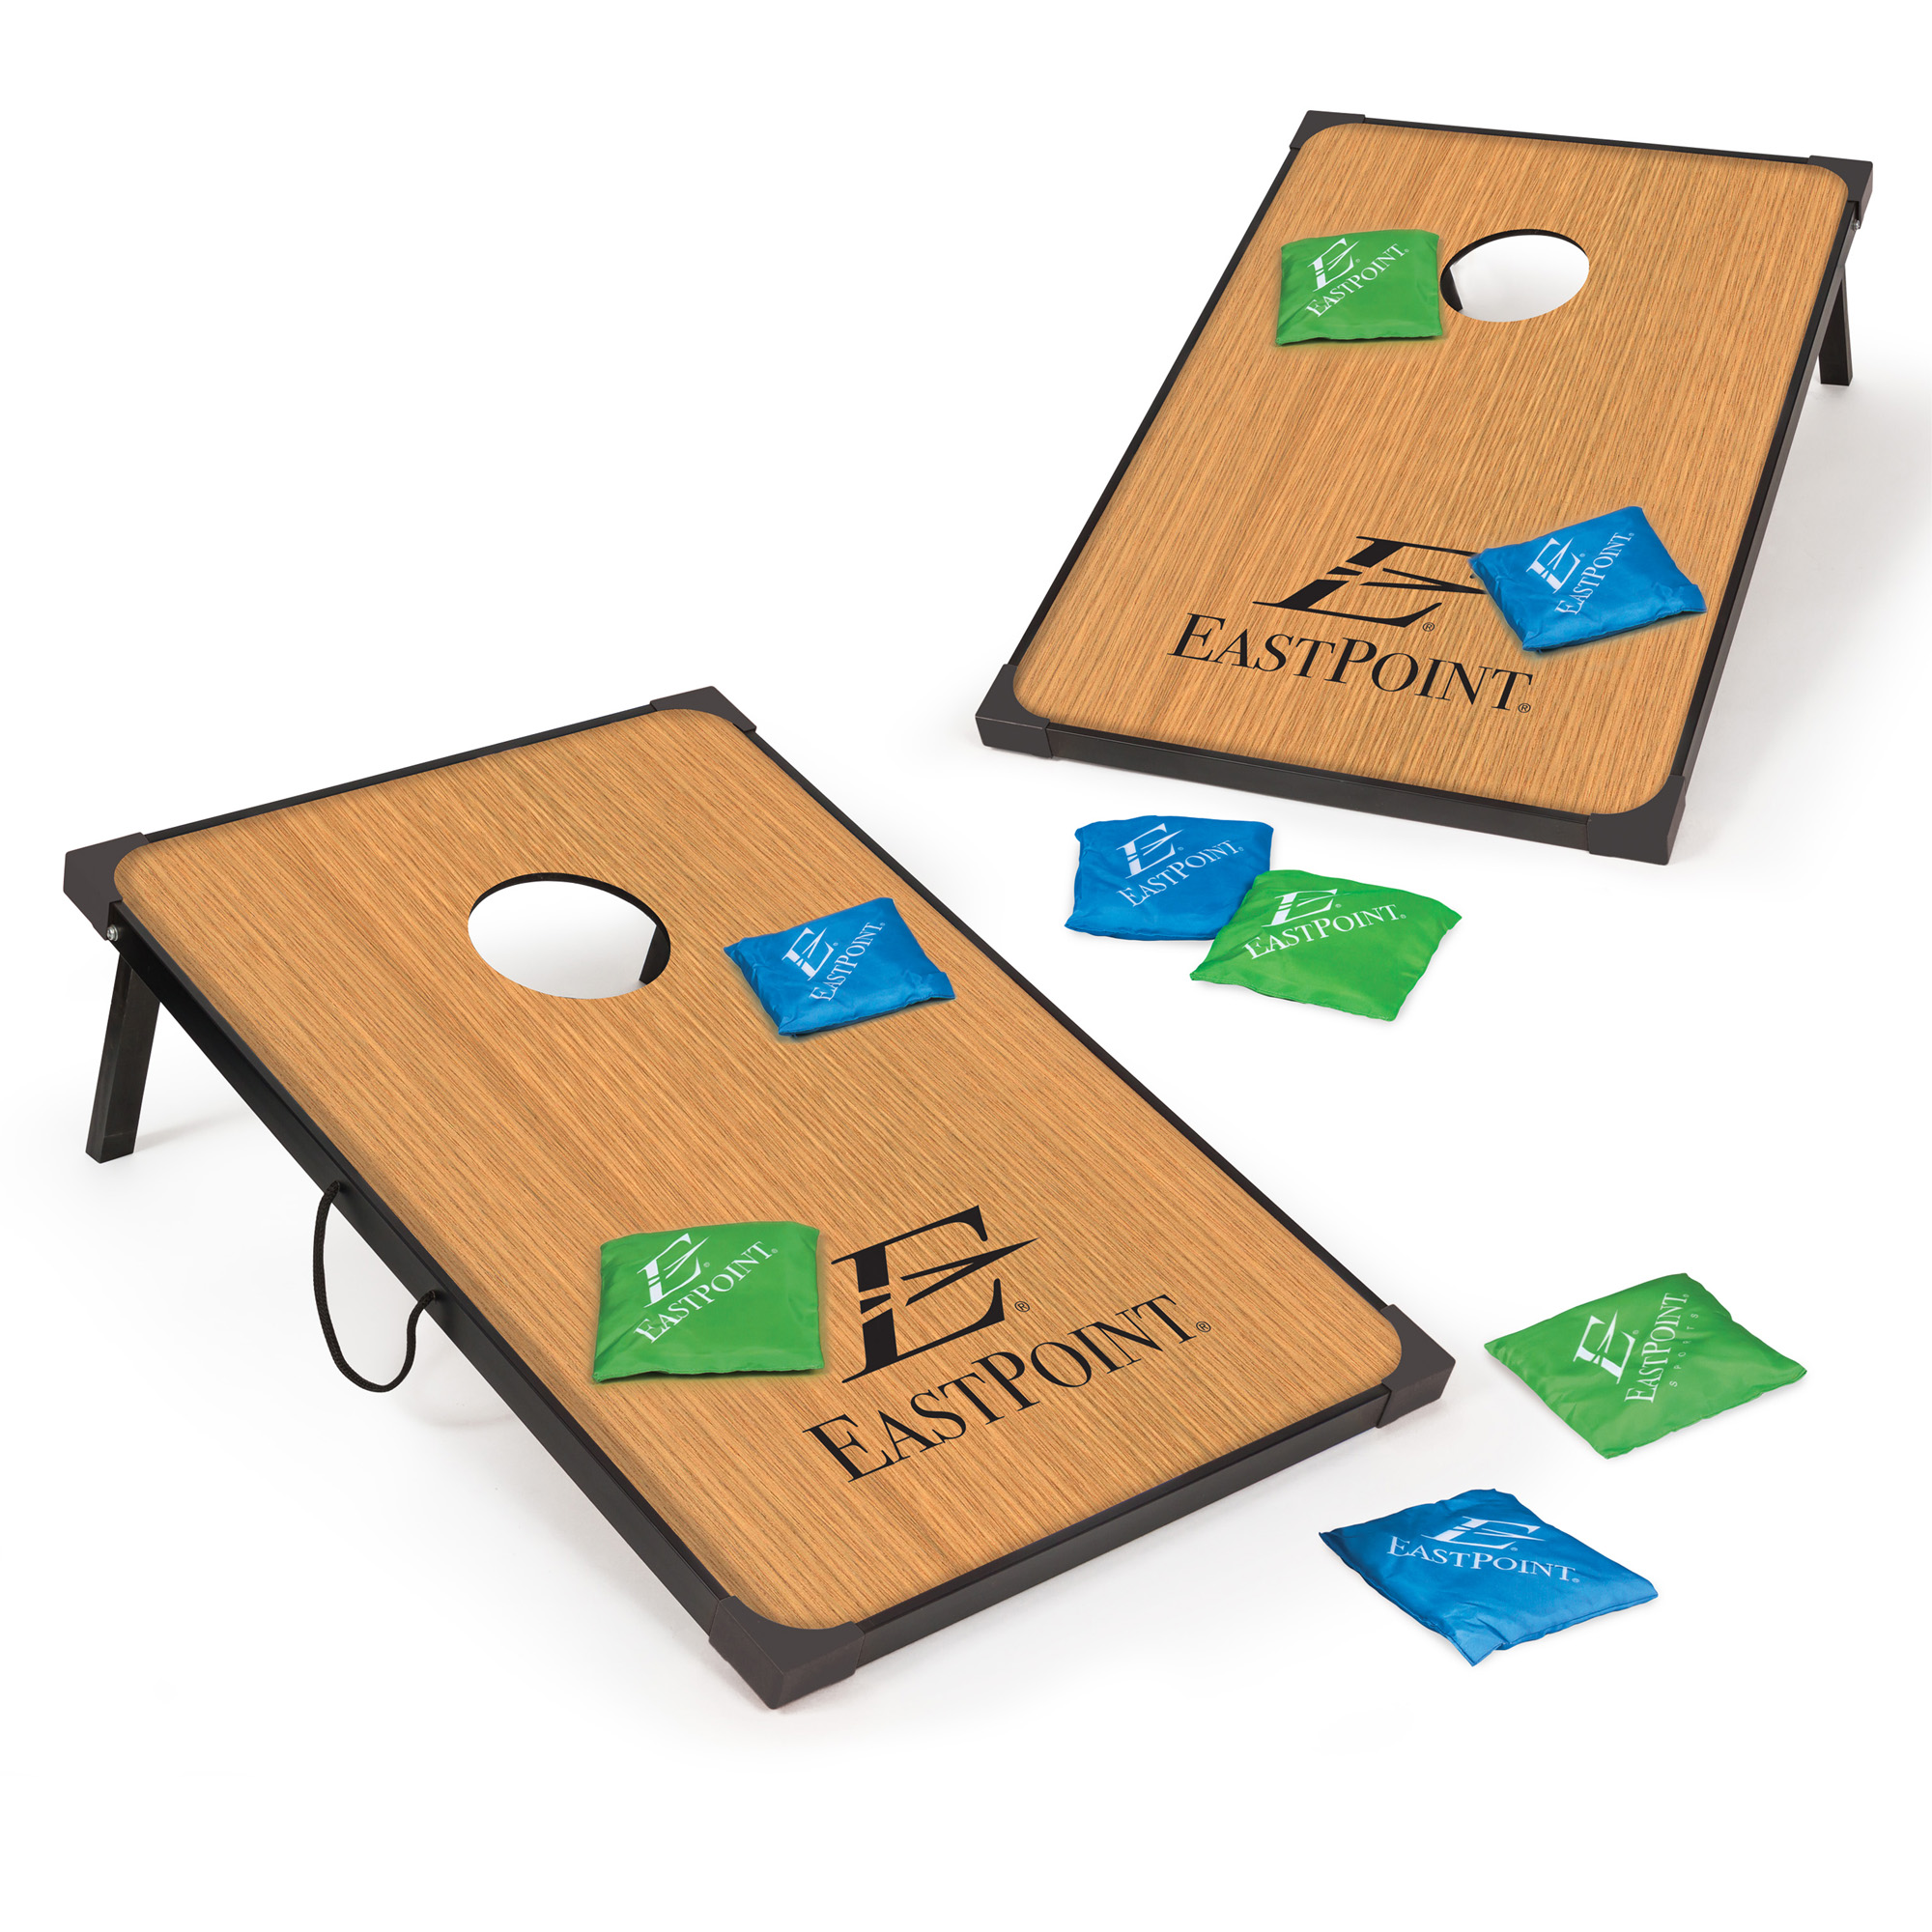 Admirable Eastpoint Sports Deluxe Bean Bag Toss 3 Ft X 2 Ft Bean Bag Toss Boards Feature Reinforced Corners And Sides For Exciting Play 8 Colorful Blue And Evergreenethics Interior Chair Design Evergreenethicsorg